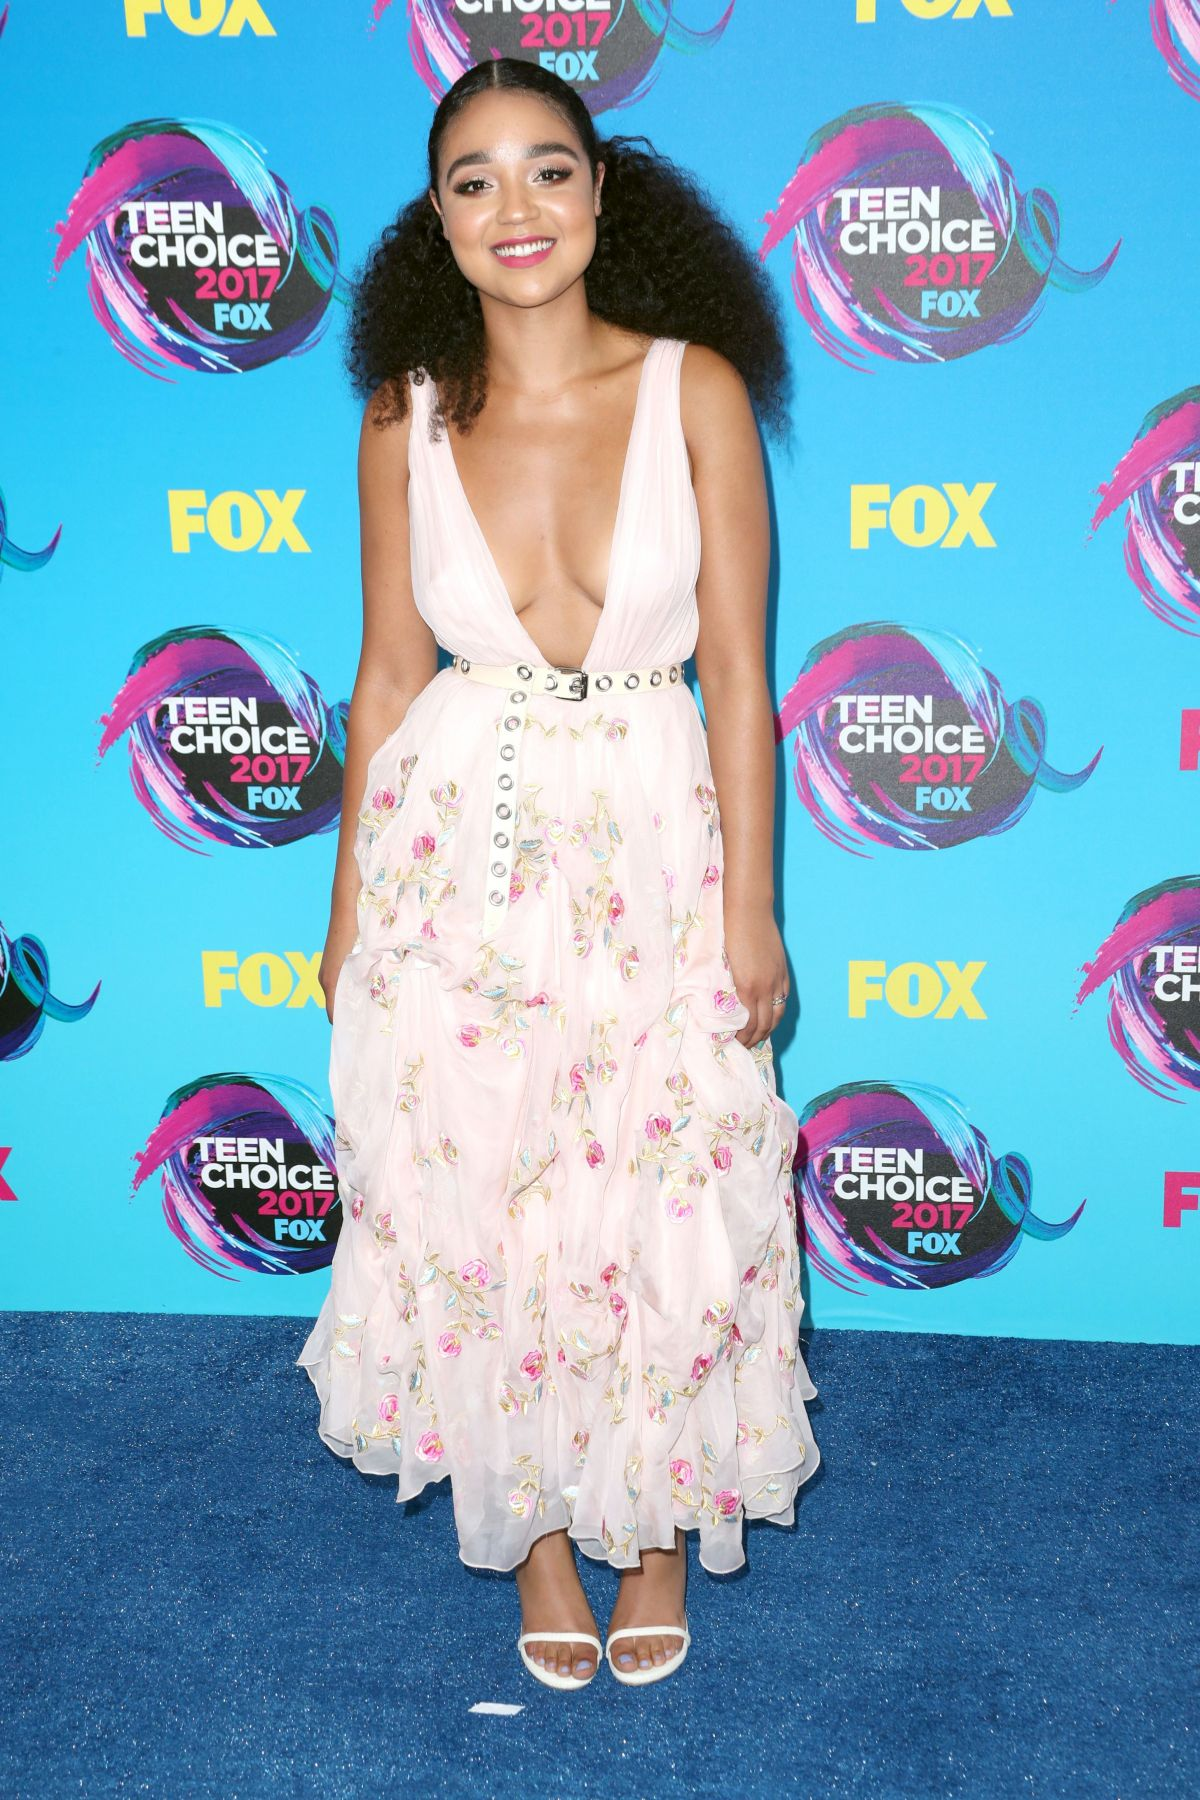 AISHA DEE at Teen Choice Awards 2017 in Los Angeles 08/13/2017